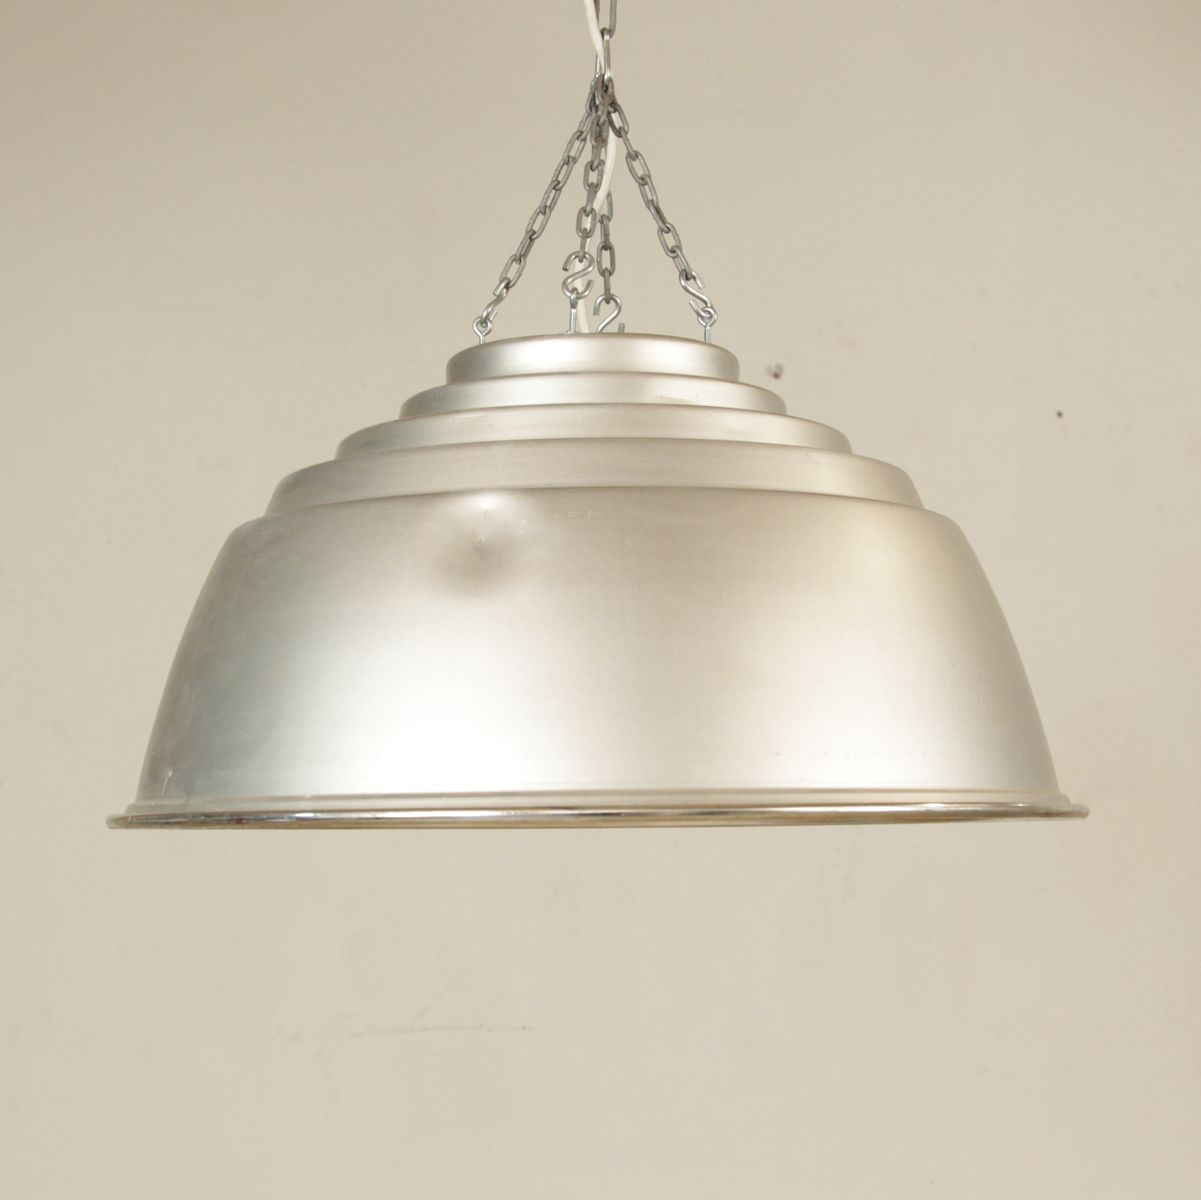 Ceiling Lights Germany : Industrial german ceiling light s for sale at pamono